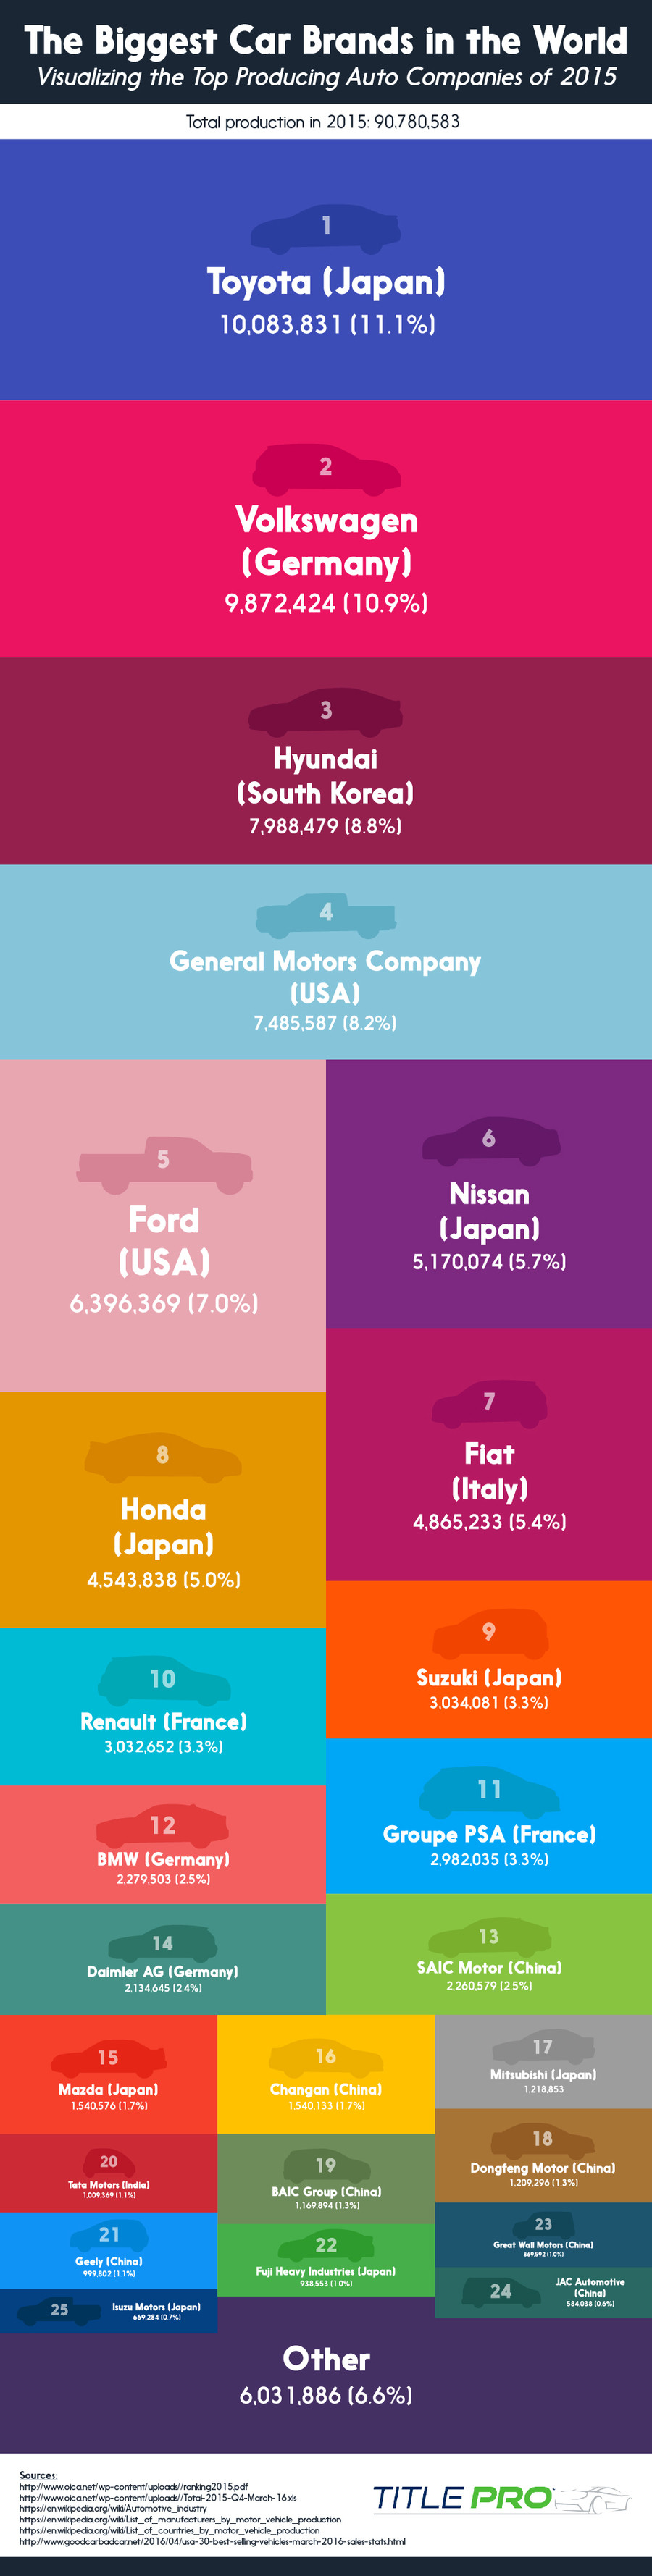 Brands that produce the most cars. https://www.titleproloans.com/top-producing-auto-companies-around-the-globe-graphic/. The Biggest Car Brands in the World Vis